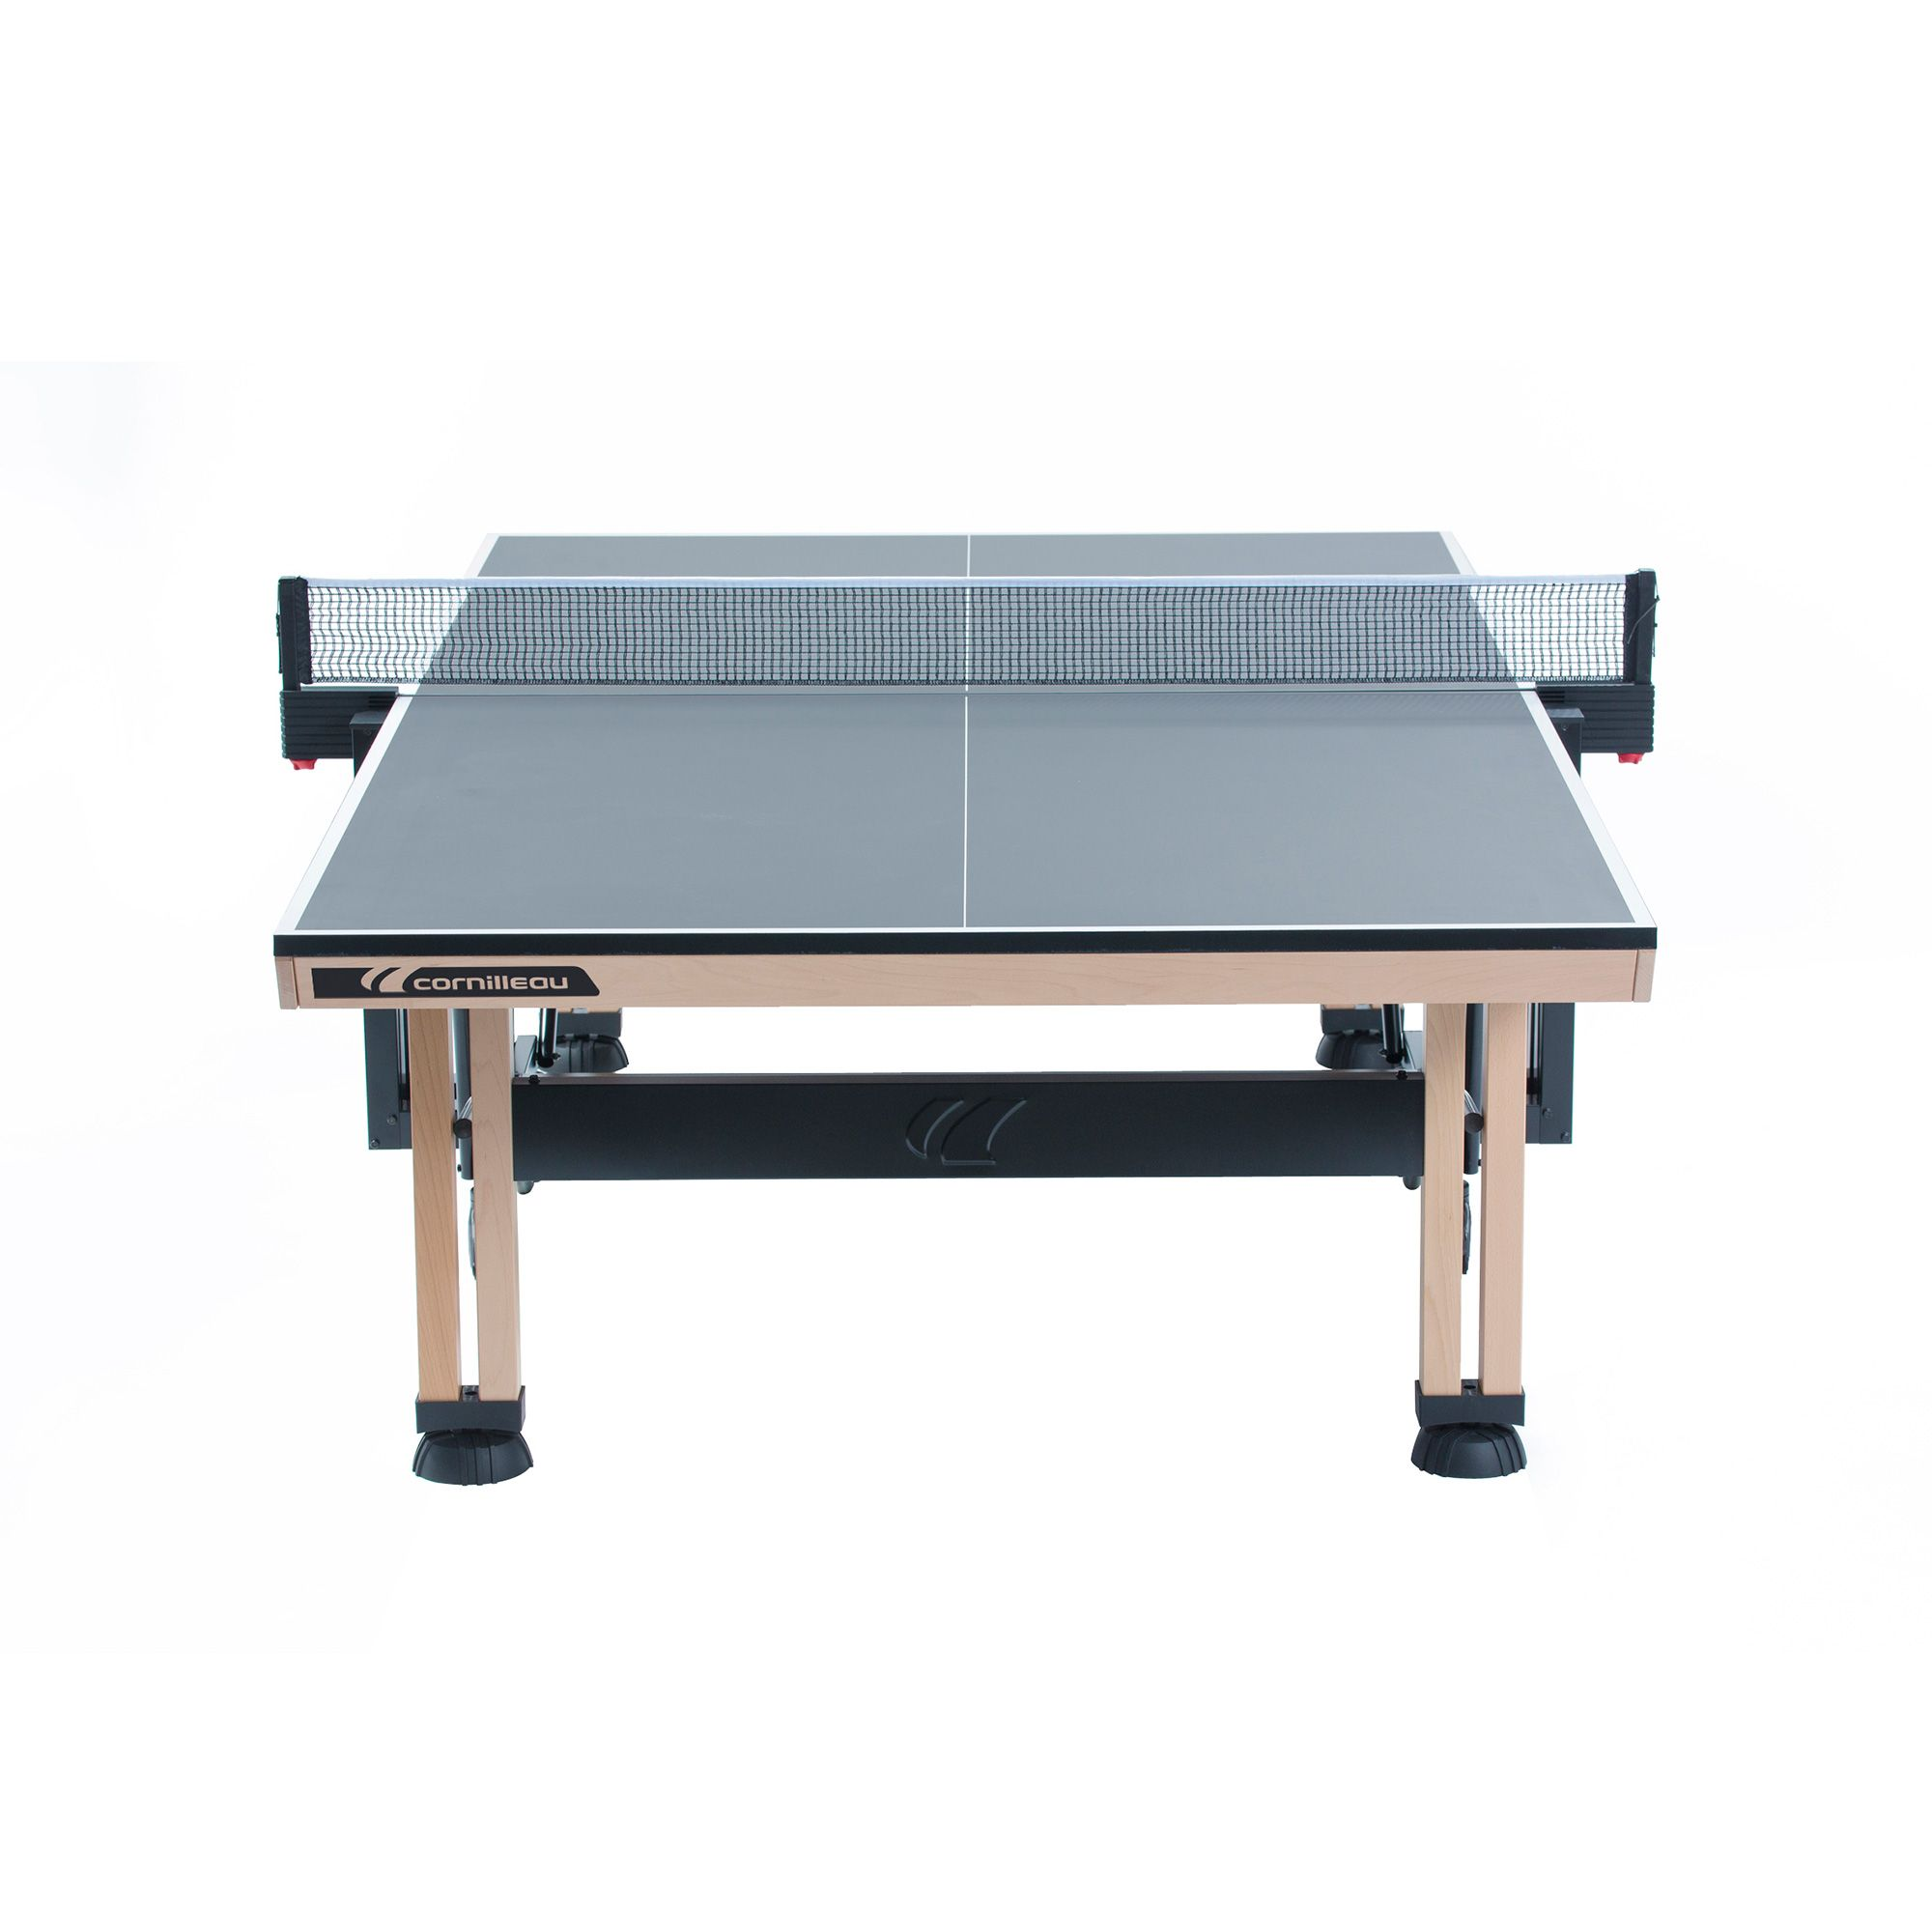 Cornilleau ittf competition wood 850 rollaway table tennis for Table 850 wood